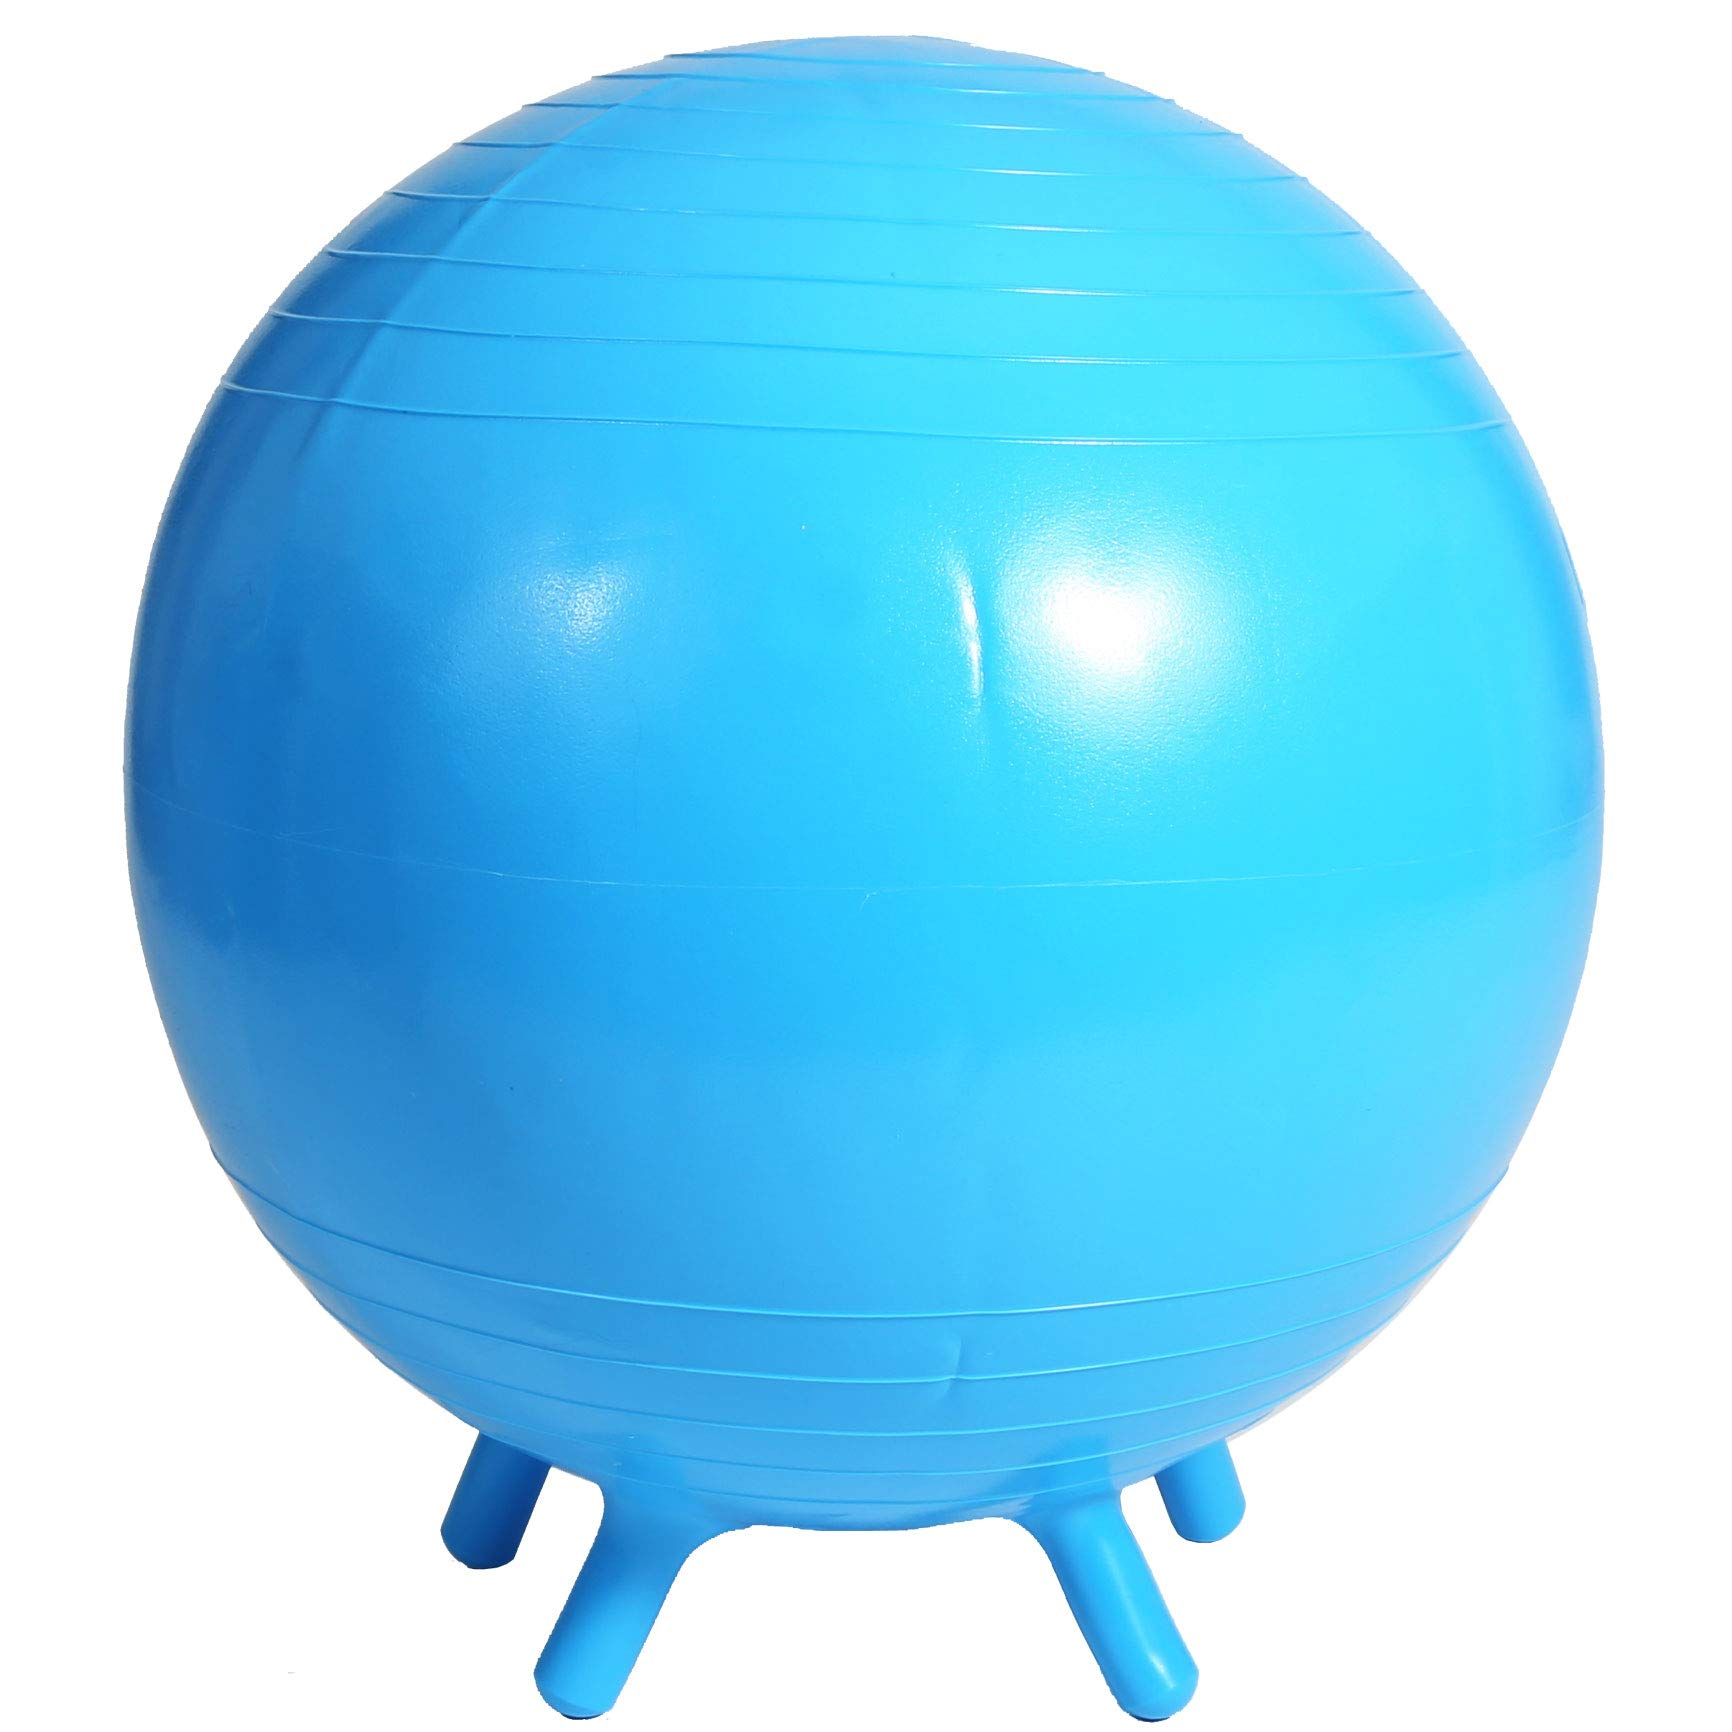 Fun and Function's Chair Ball for Flexible School Chair, Active Classroom Desk Seating with Stay-Put Stability Legs - 21 inch - Blue